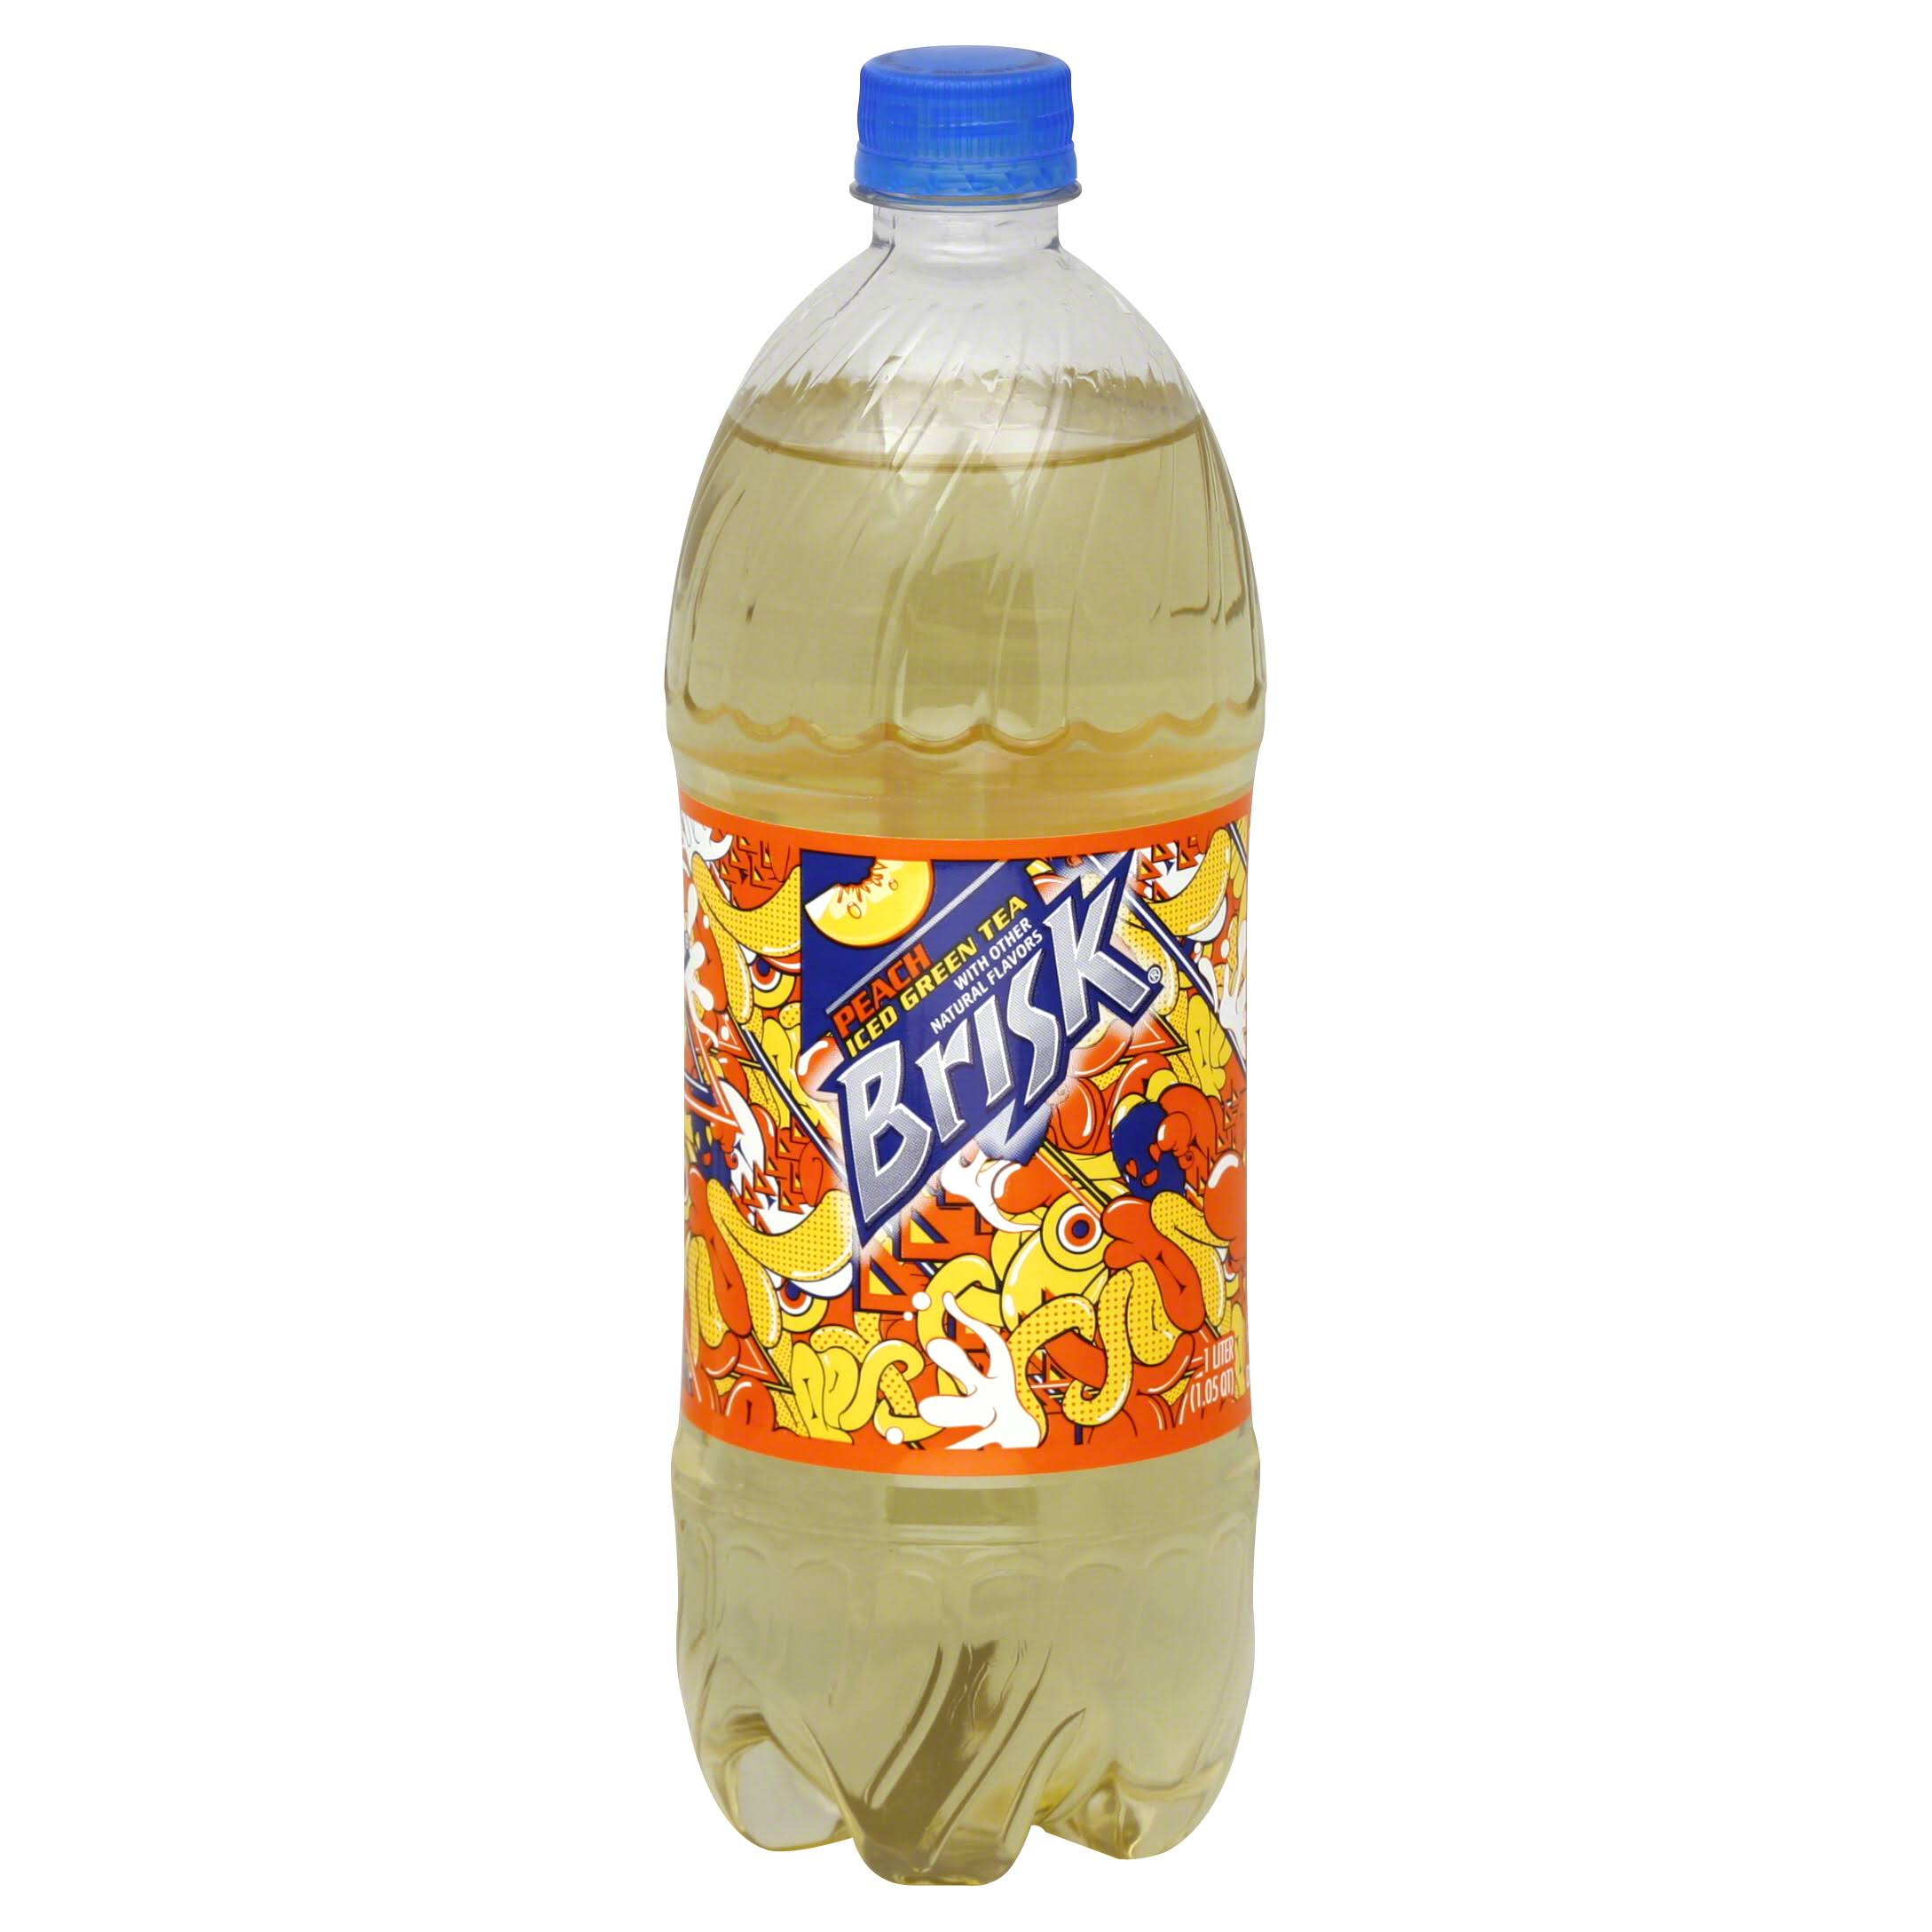 Lipton Brisk Iced Tea - 1l, Peach